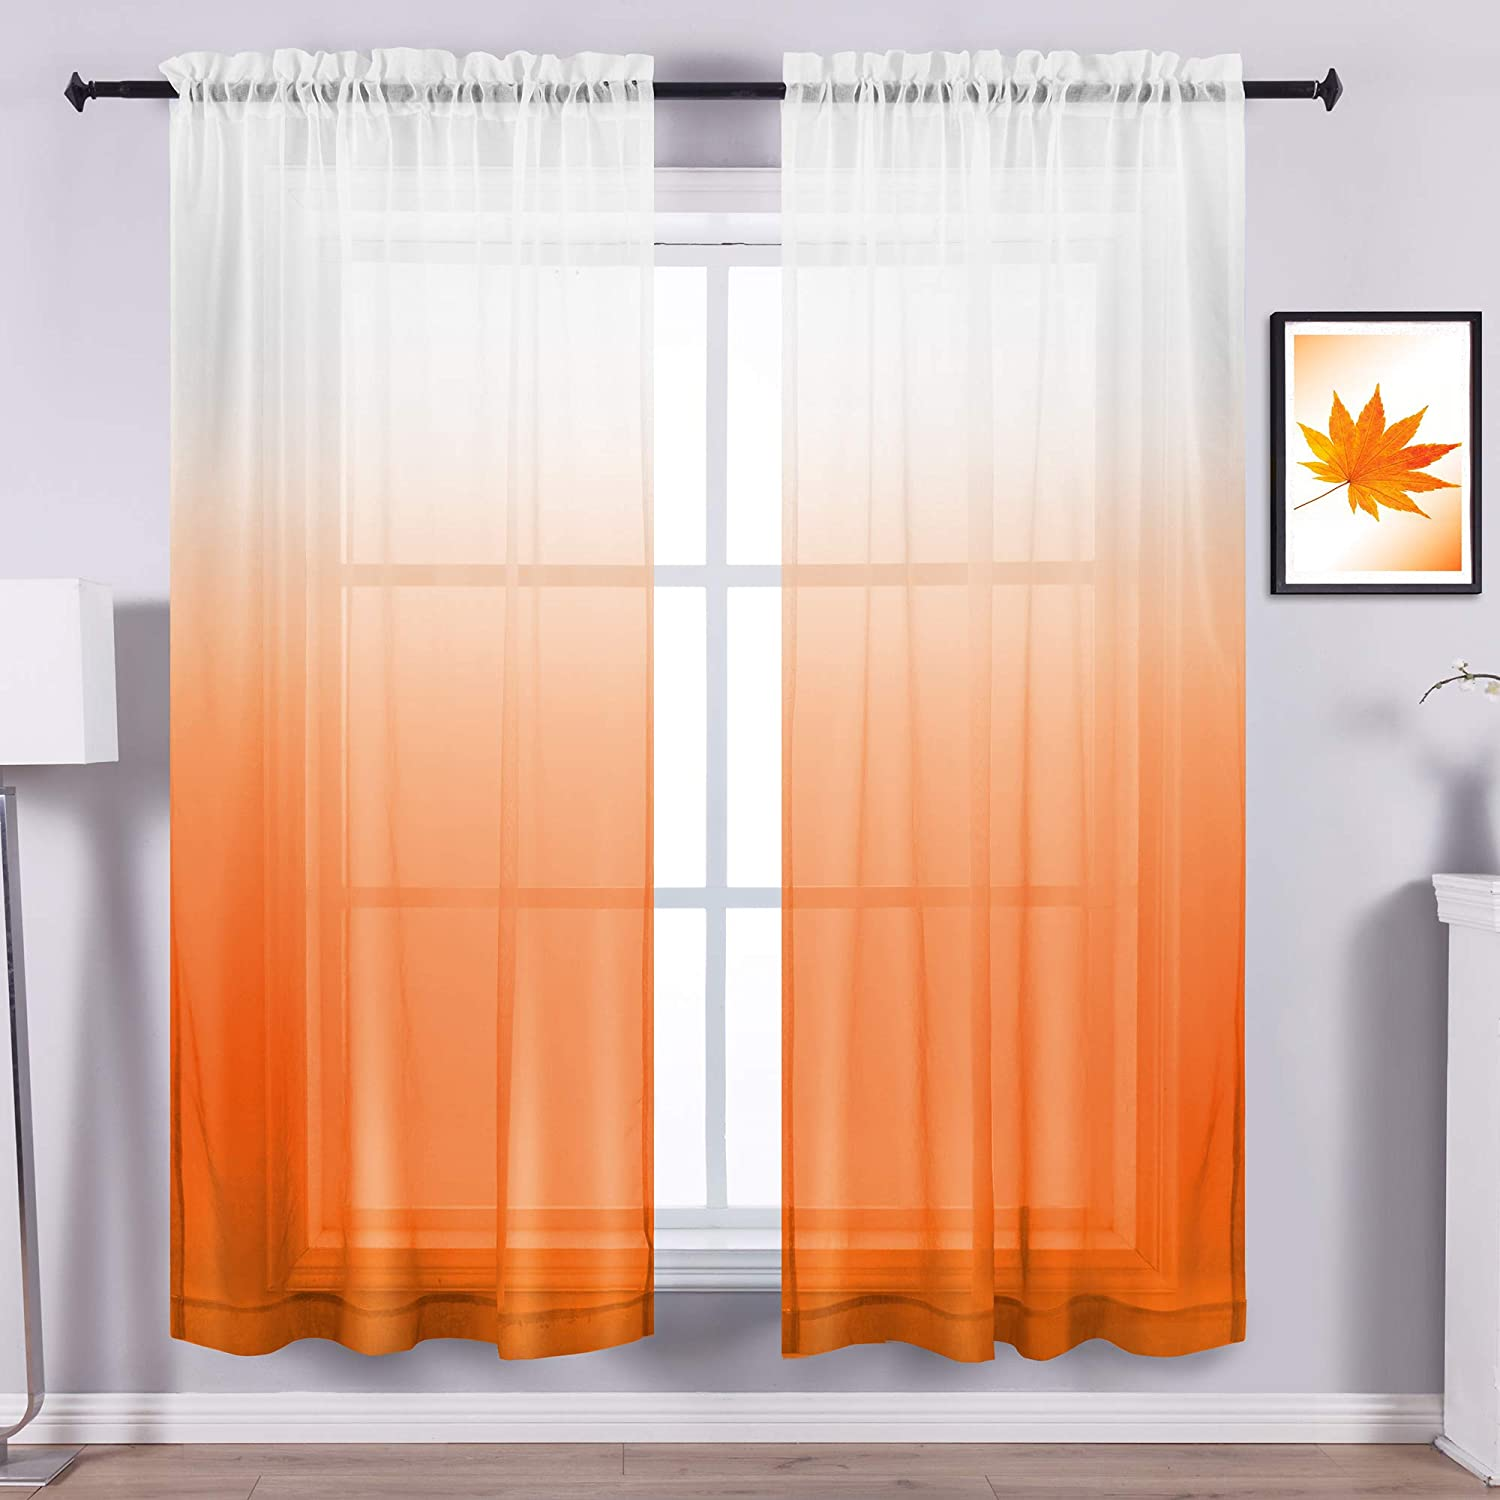 Fall Sheer Curtains For Living Room Set 2 Panels Halloween Autumn Window Treatment Home Decor Rod Pocket Voile Ombre Elegant Fall Pattern Curtains For Bedroom Dining Kitchen Bathroom 63 Inch Length